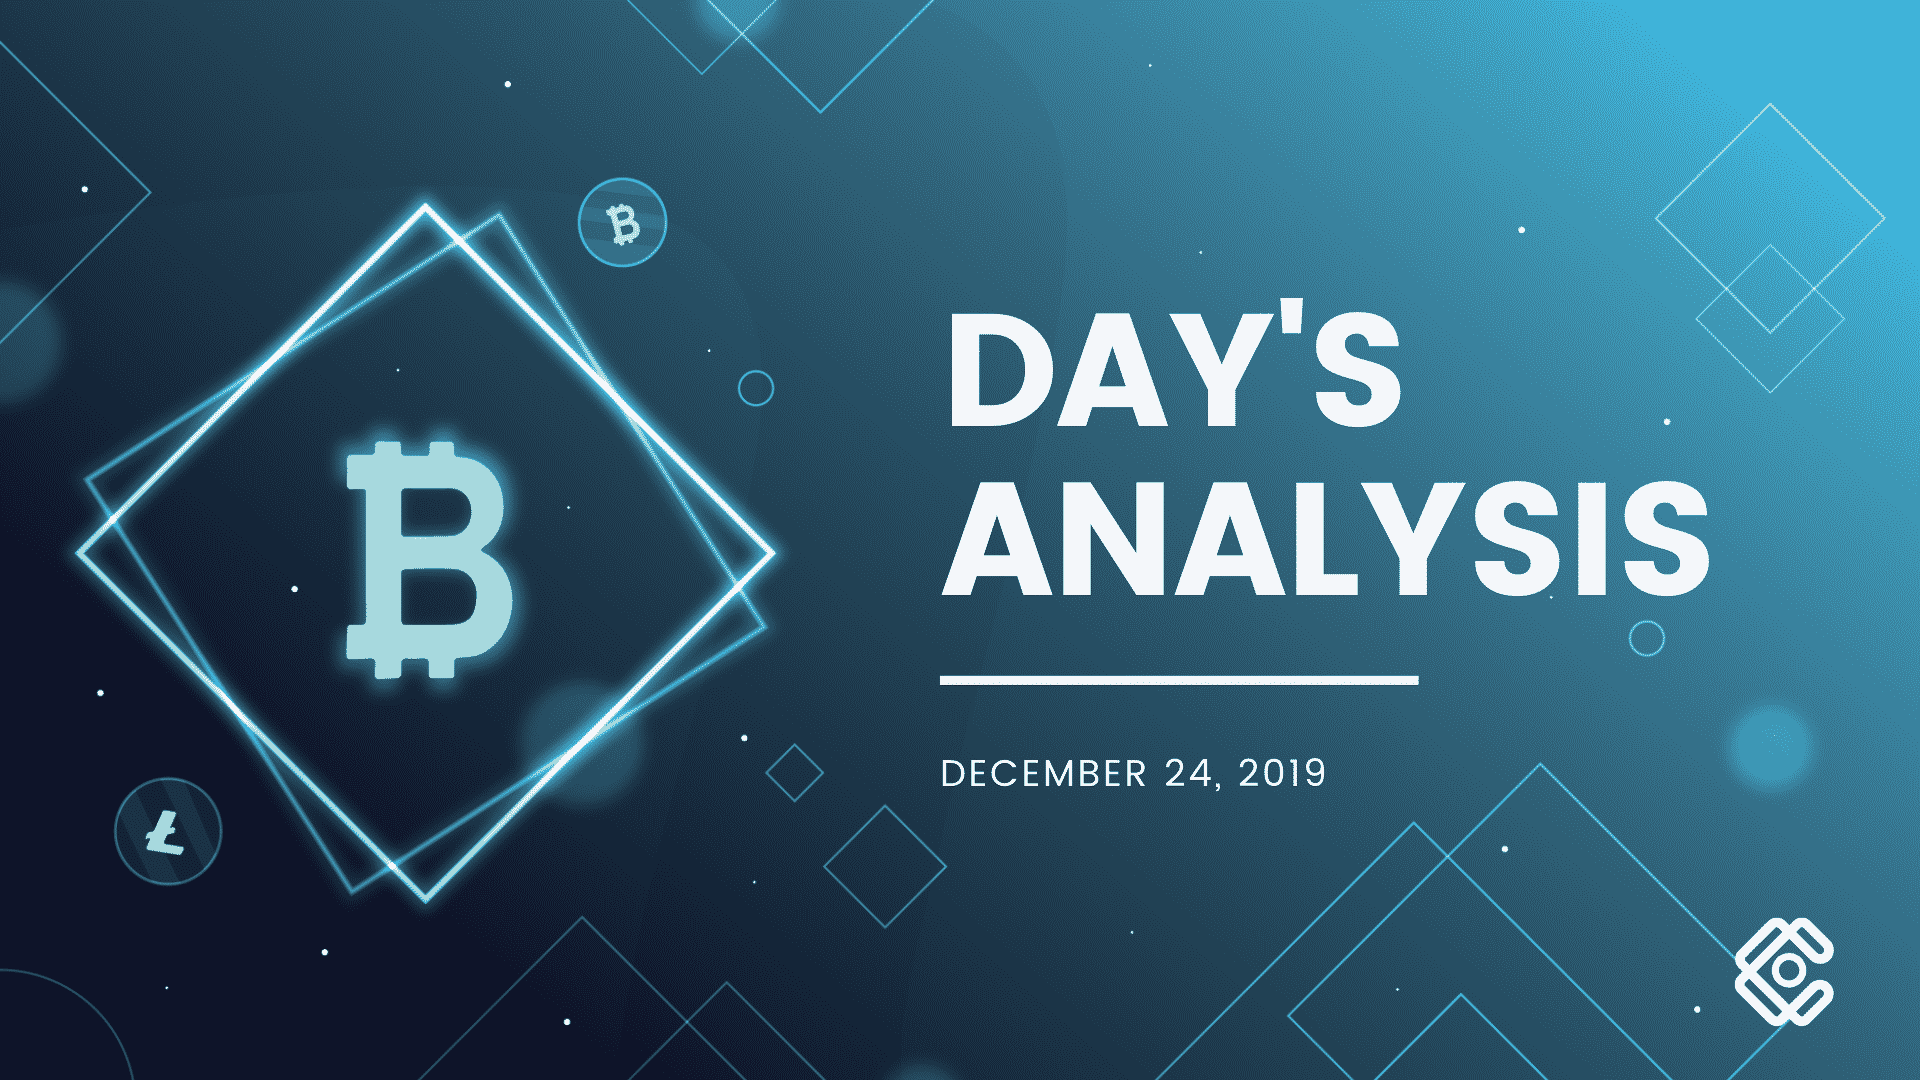 Market Analysis of December 24, 2019